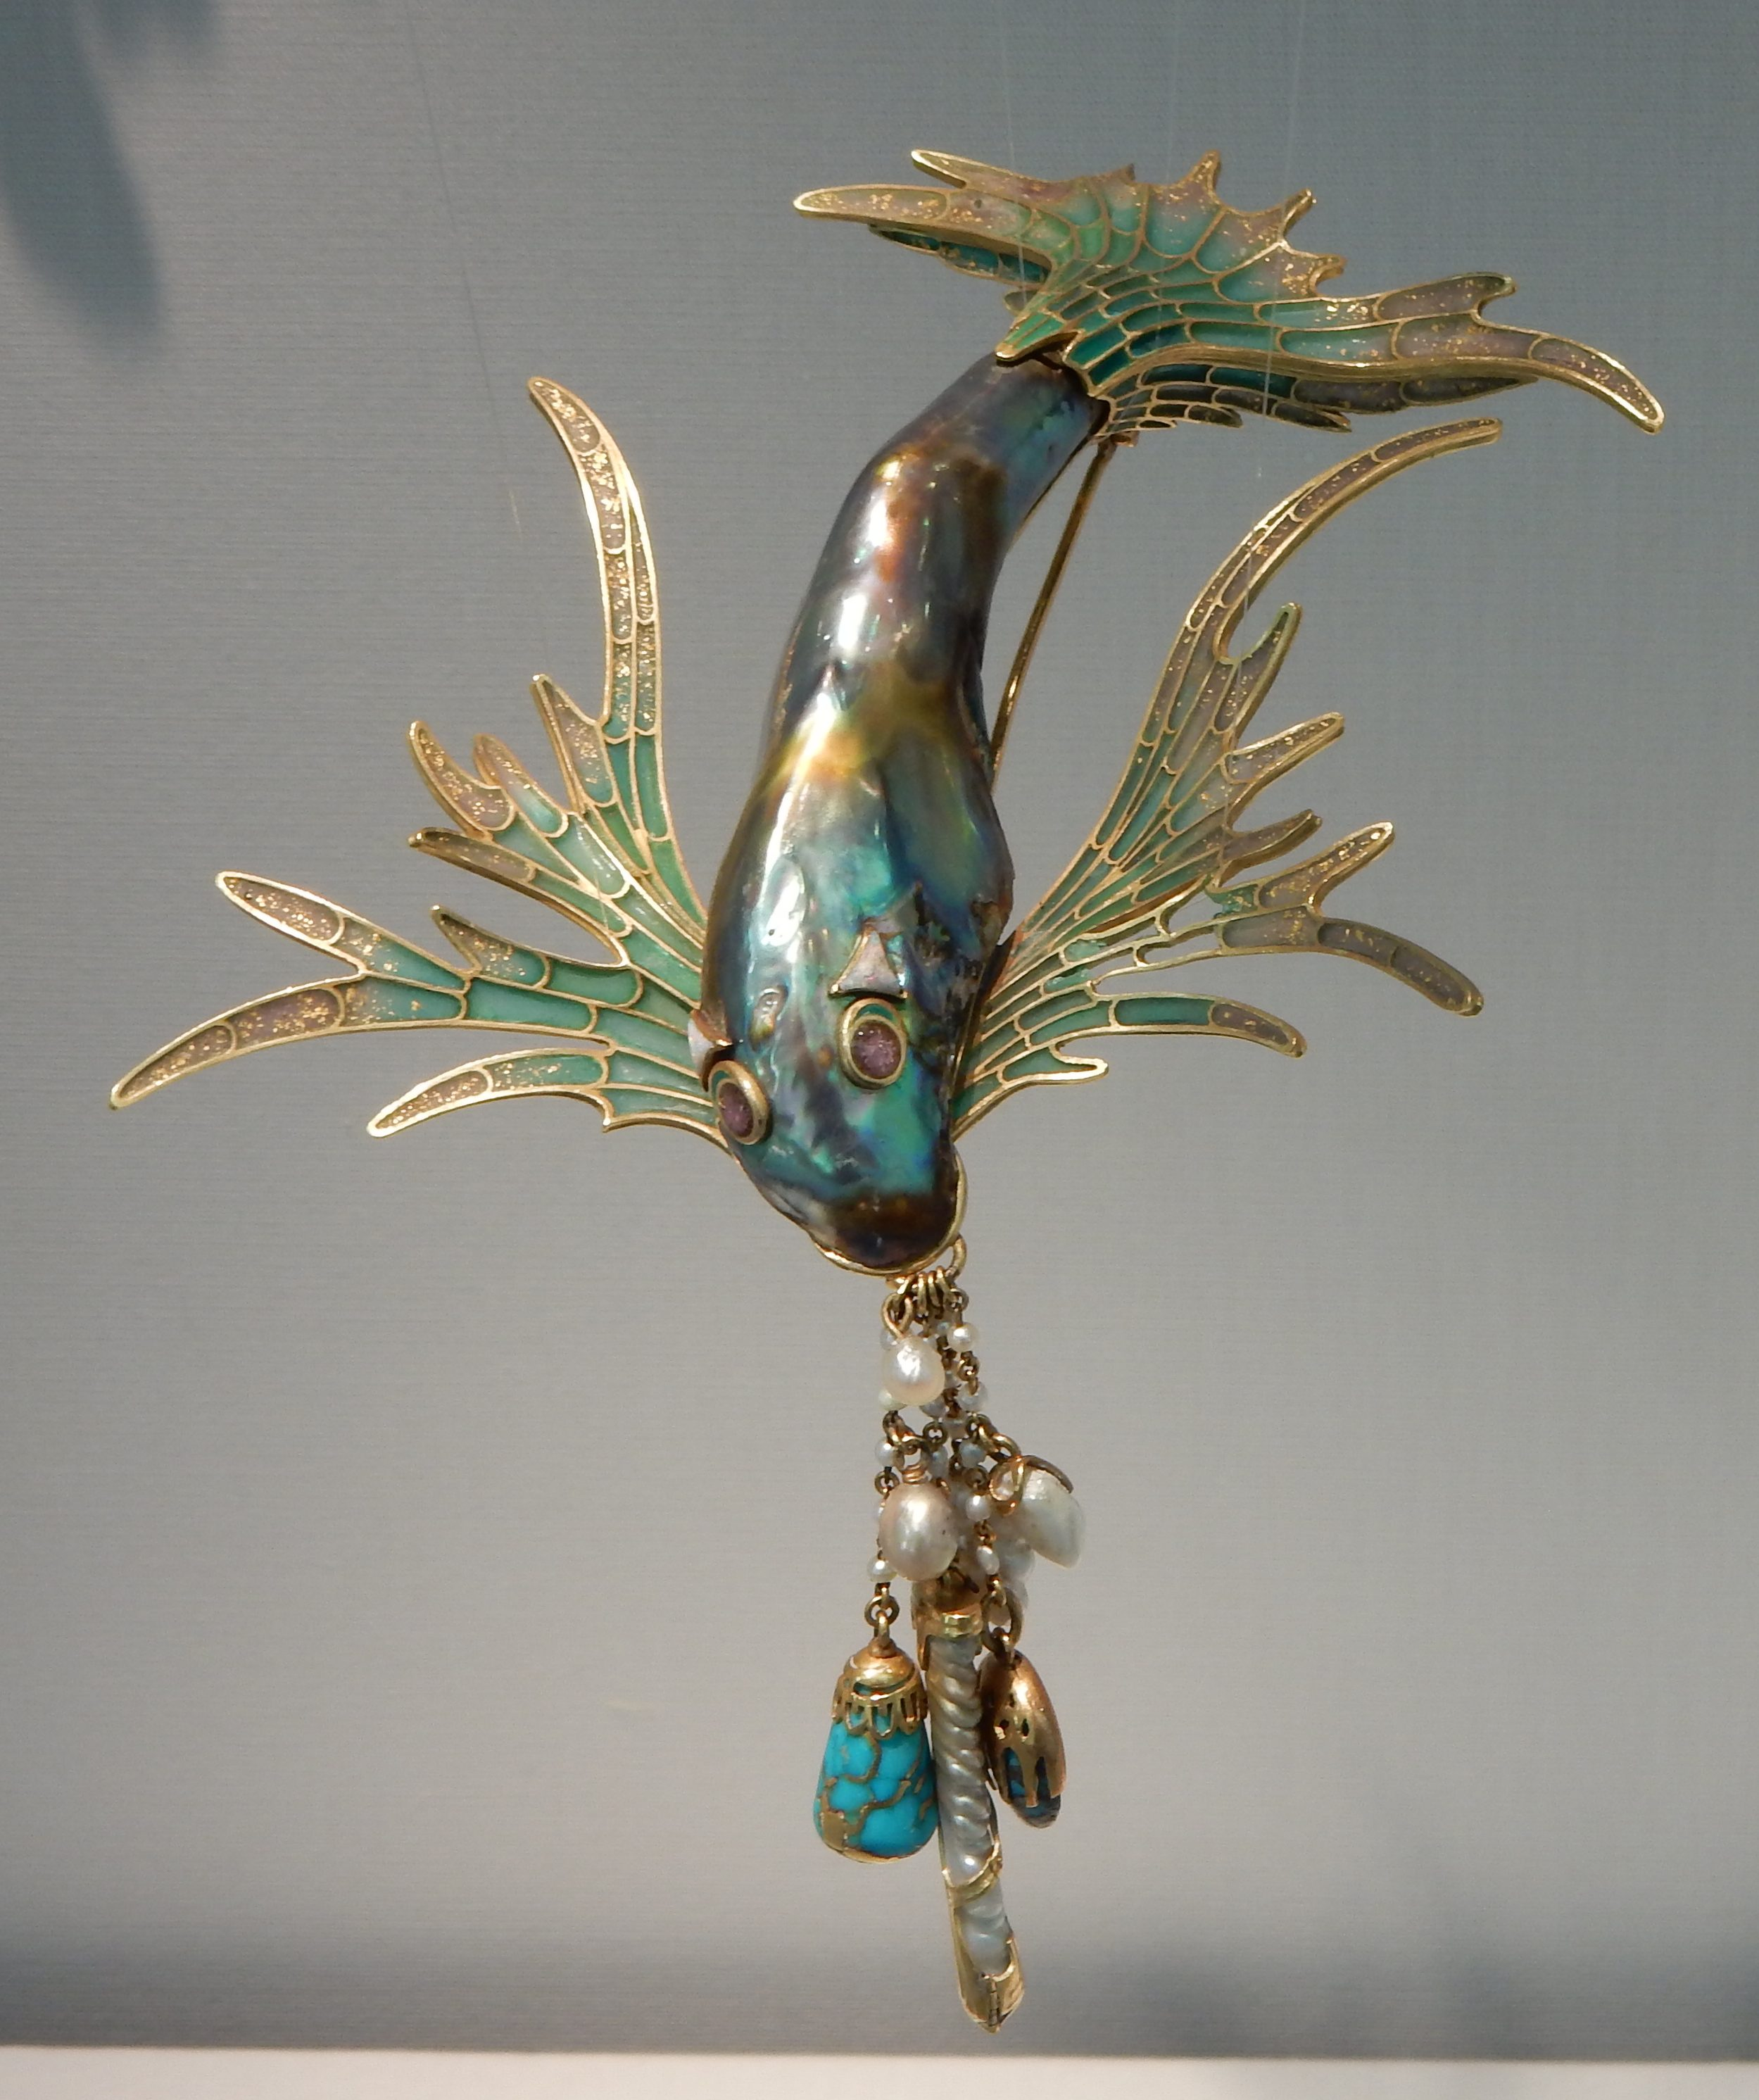 Georges Fouquet, Poisson, broche, 1900-1901. Schmuckmuseum Pforzheim, september 2018. Foto met dank aan Coert Peter Krabbe, CC BY 4.0